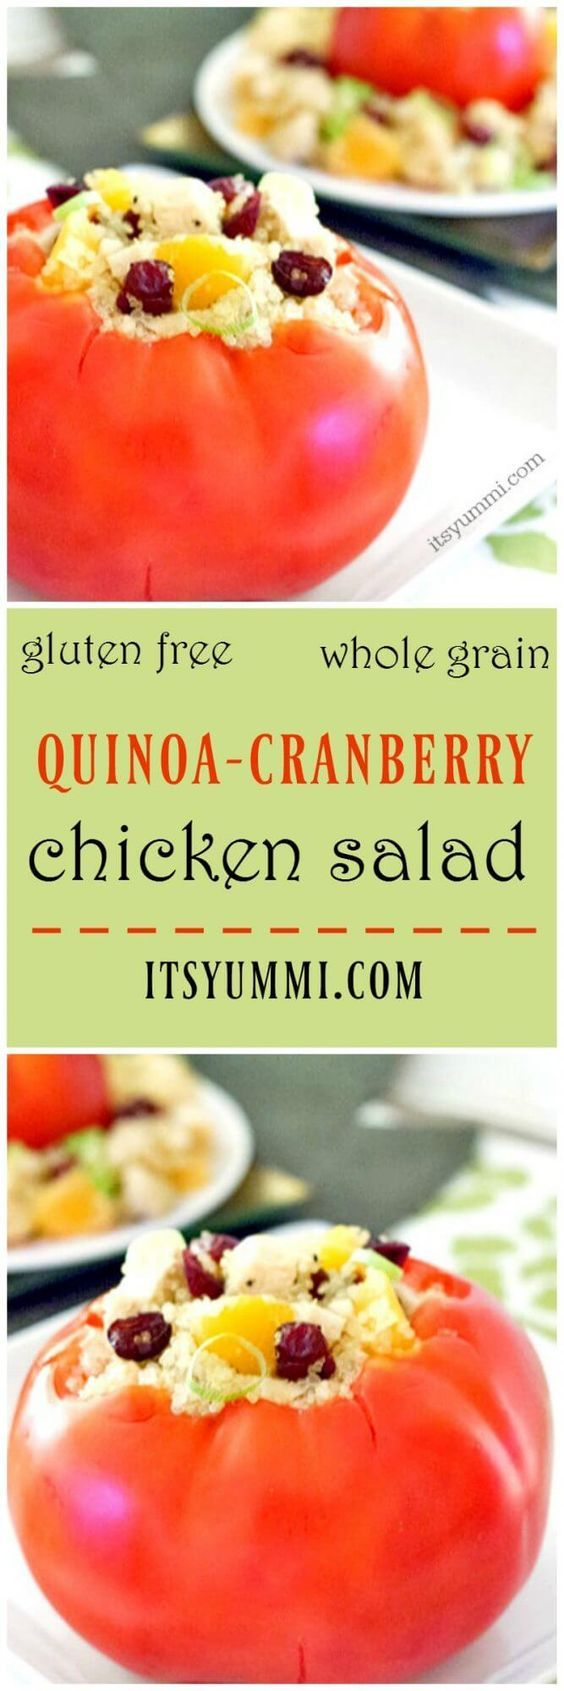 Quinoa cranberry chicken salad has tender chicken breast and protein-packed quinoa. With oranges, cranberries, and an Asian vinaigrette.